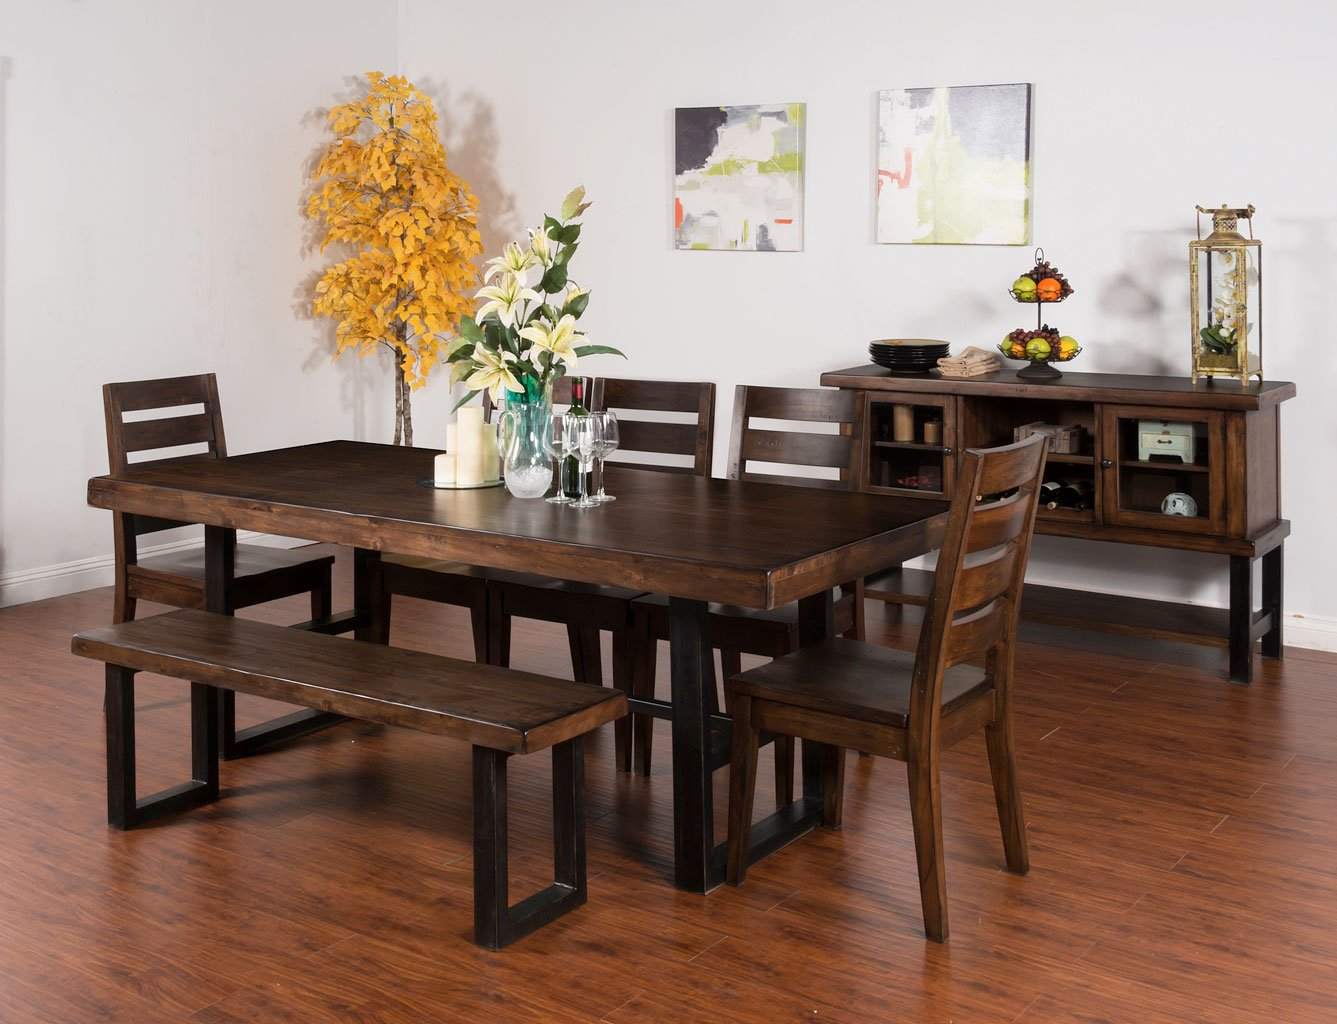 Weathered Pine Dining Room Set W Bench Sunny Designs